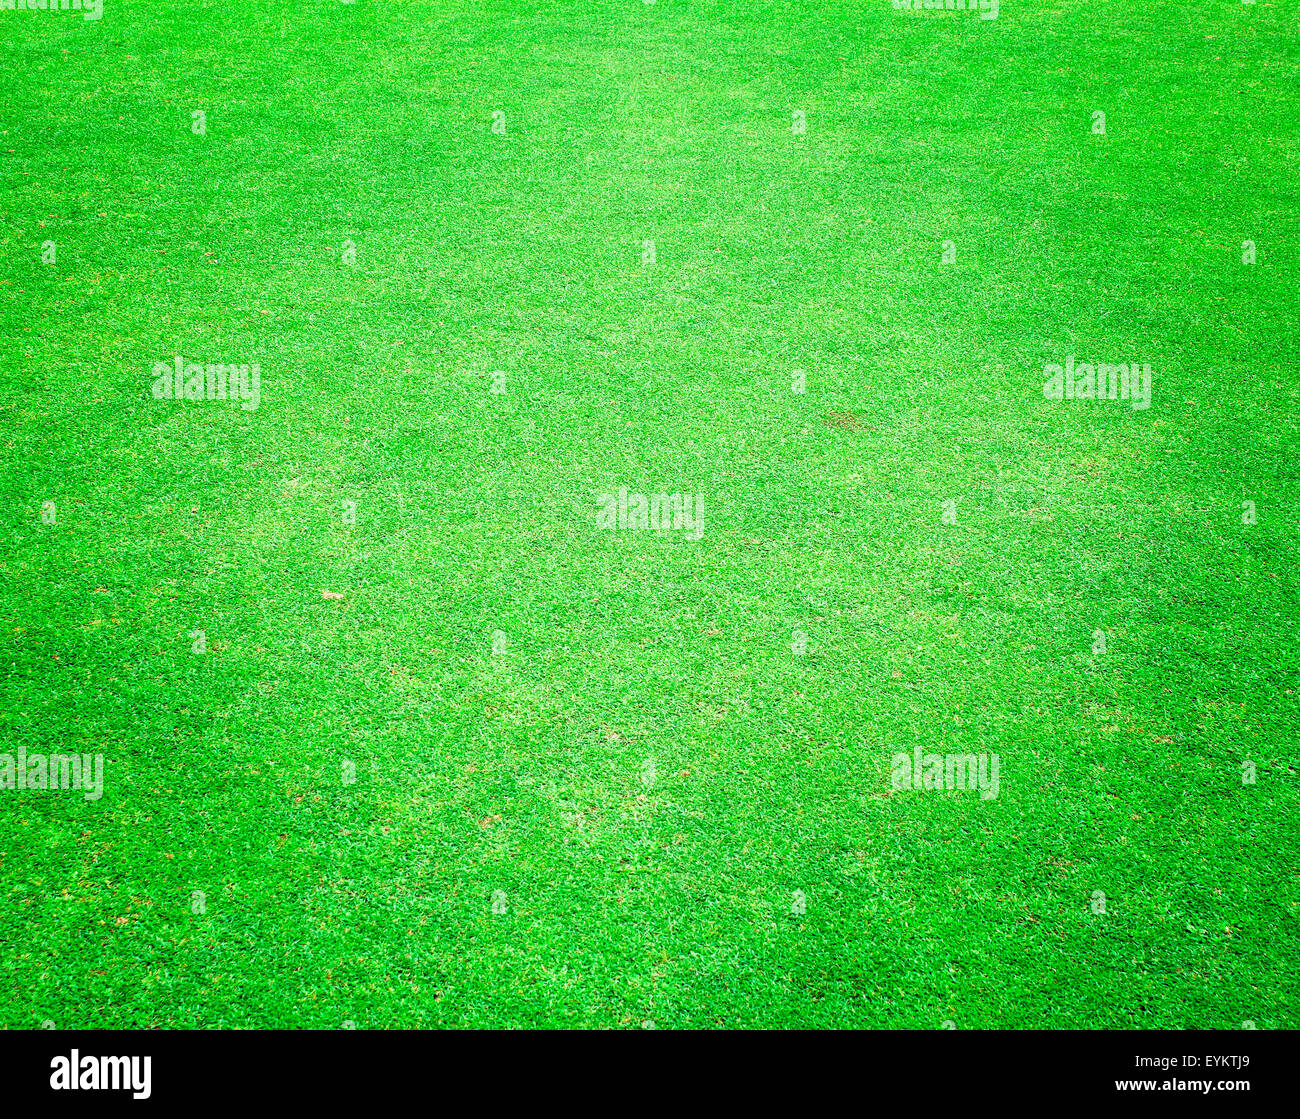 Golf Green Grass background pattern background texture. - Stock Image